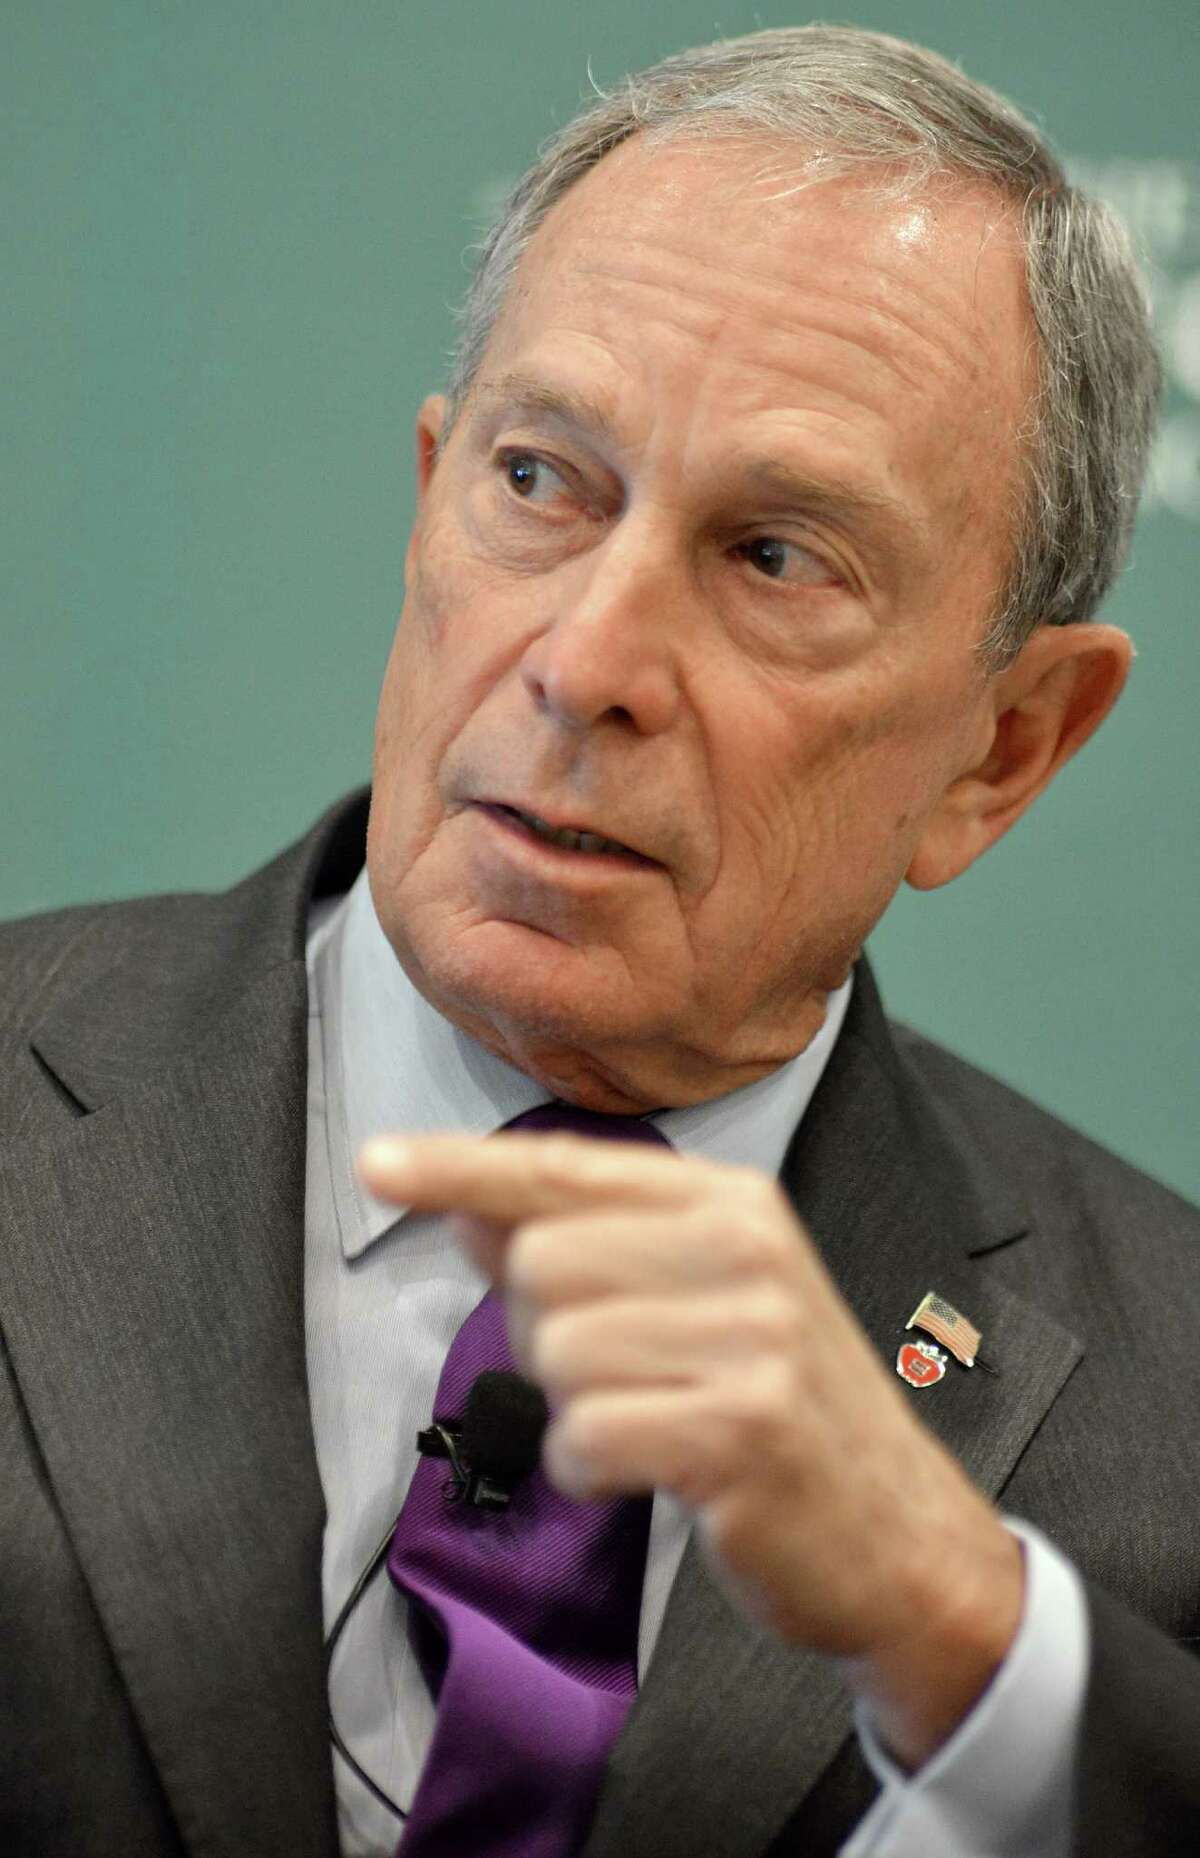 Bloomberg is worth an estimated $31 billion, according to Forbes.